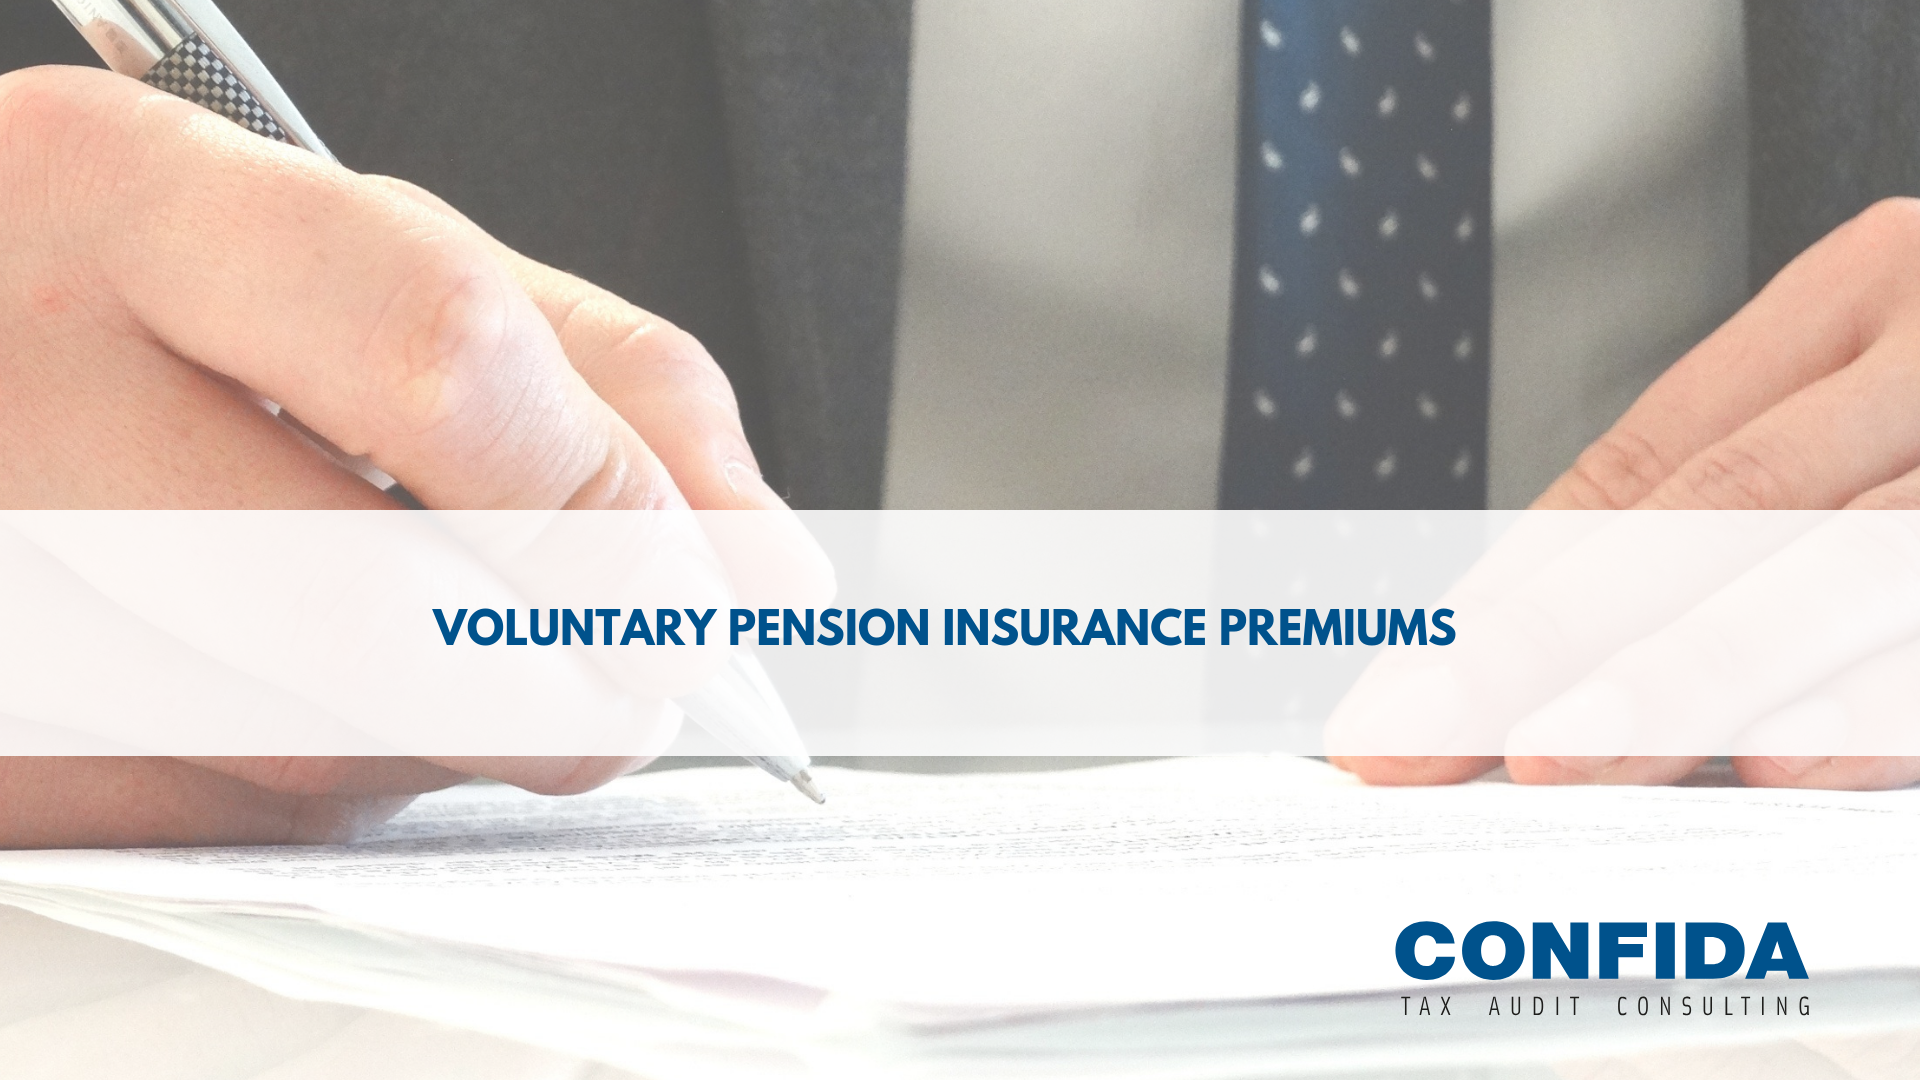 Voluntary pension insurance premiums